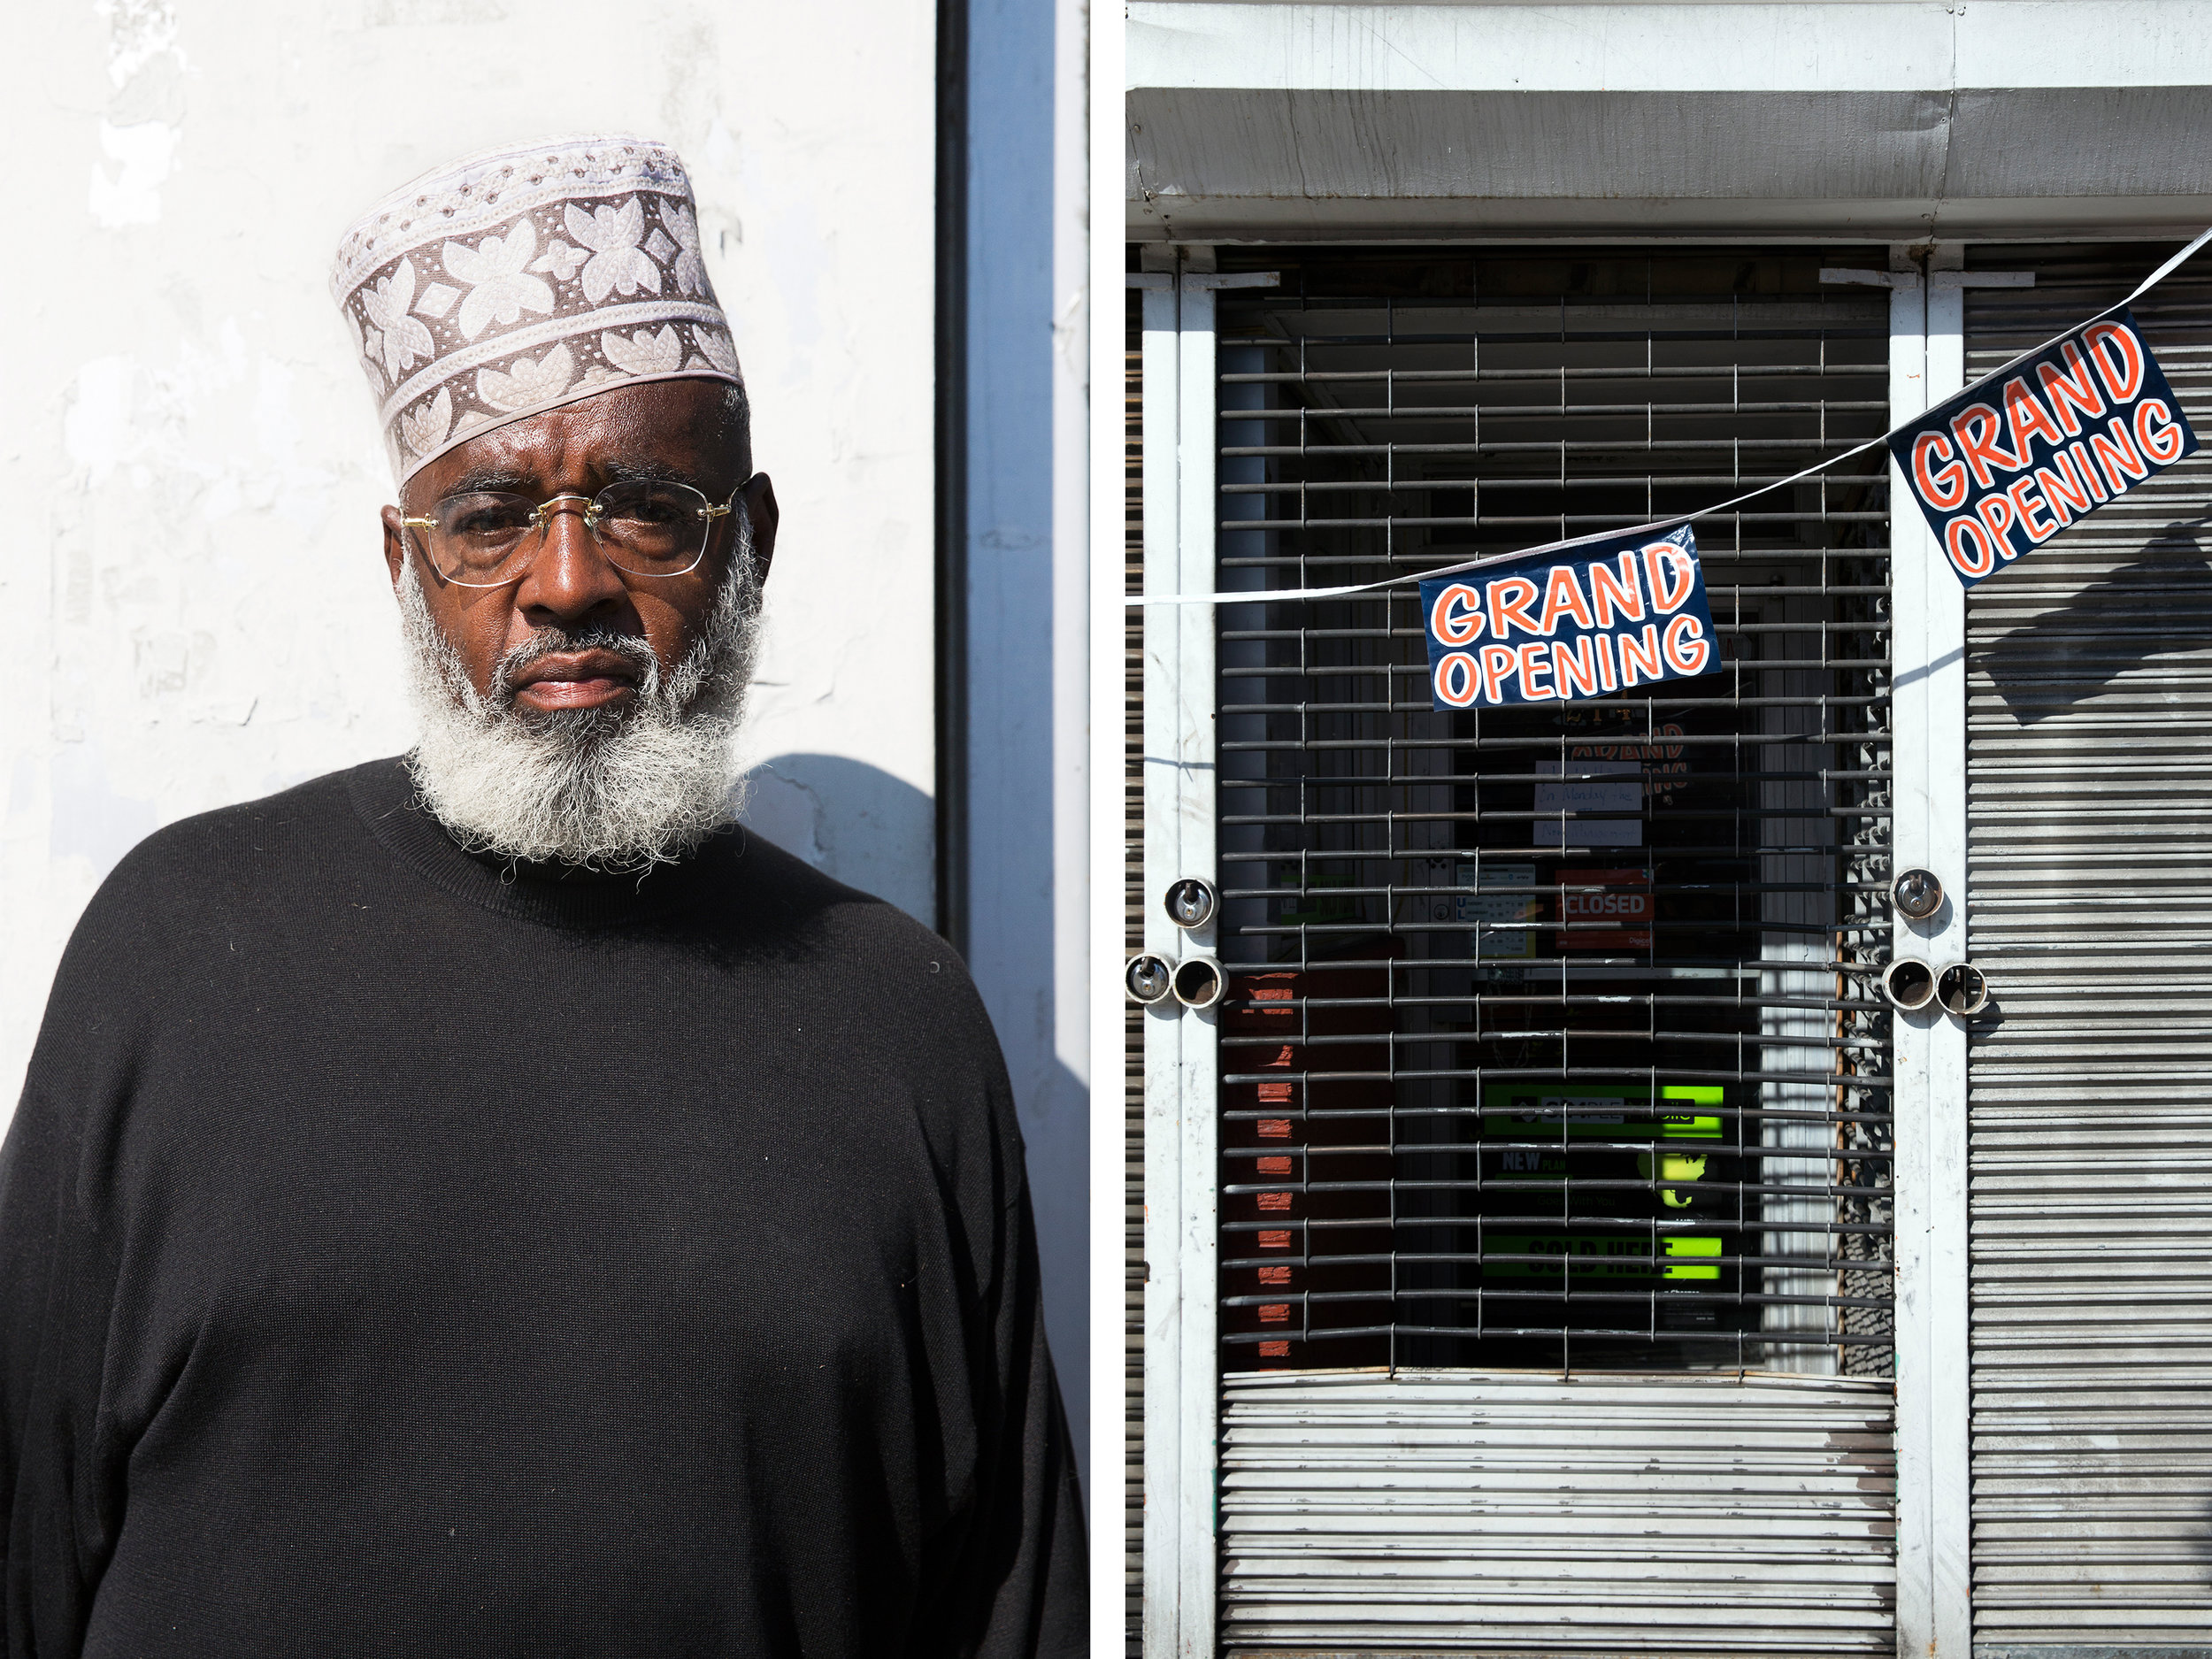 """(Left) Shahdeed, 52, at 52nd & Chestnut. Shandeed contributes """"the ethics of hard work, dignity, and honor."""""""